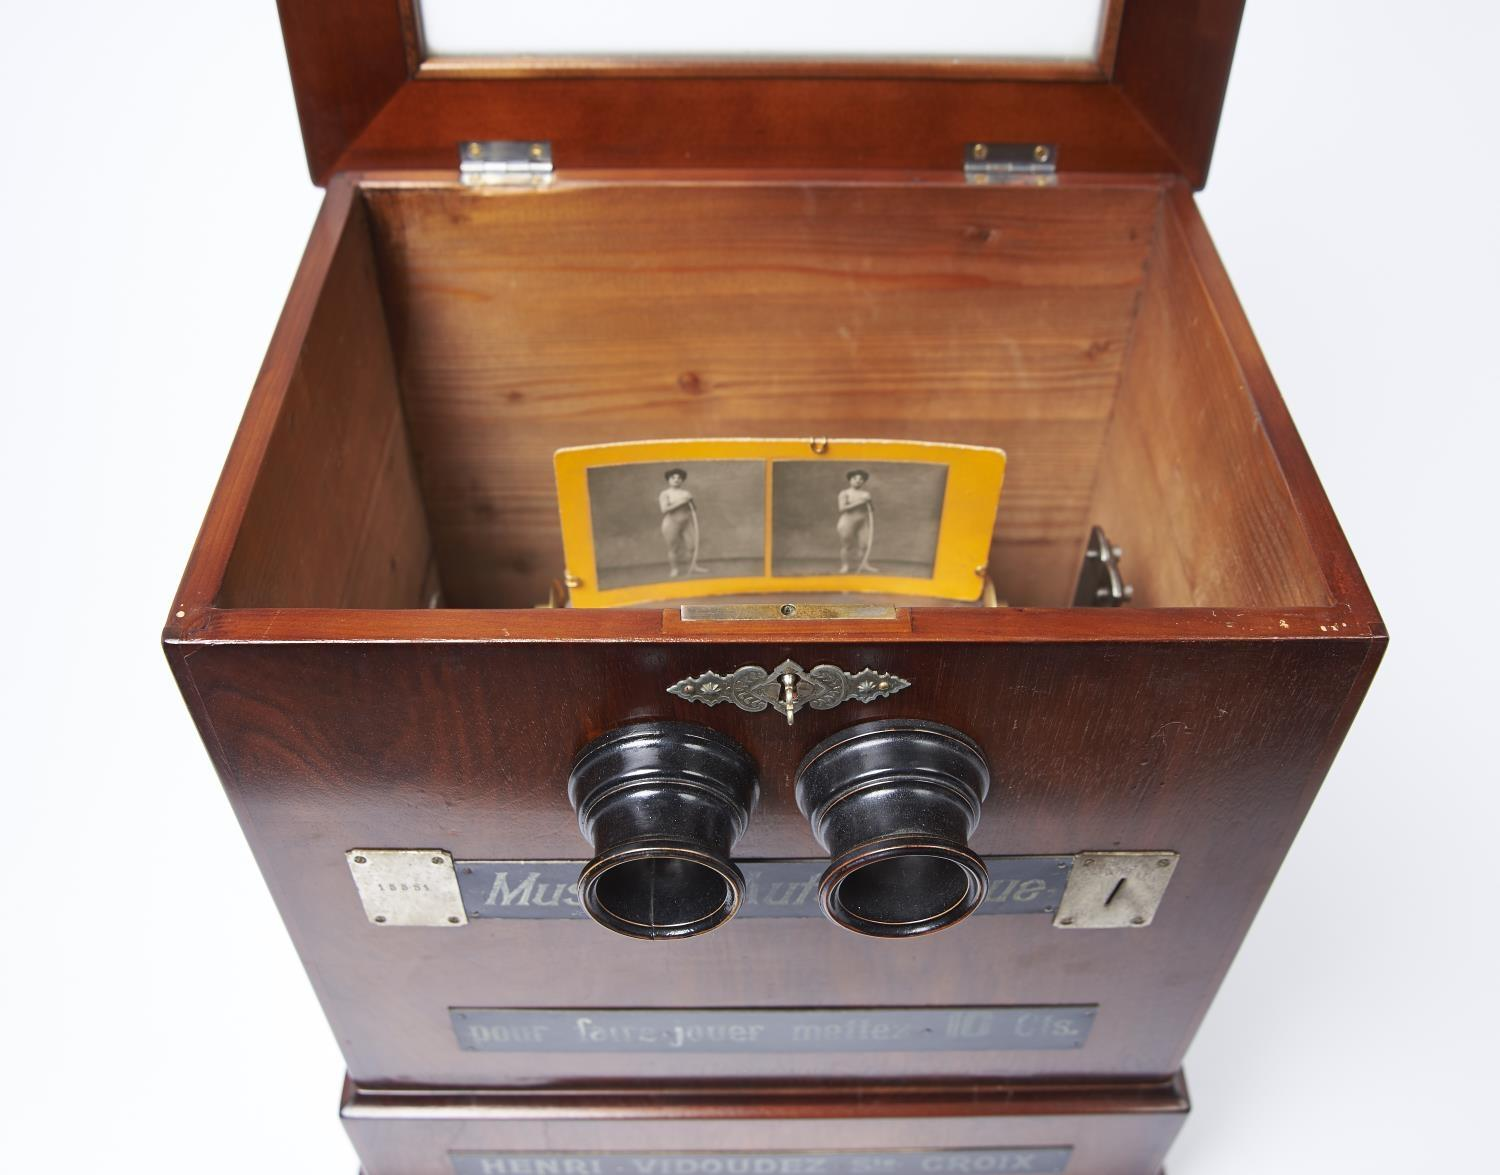 A FINE AND RARE SWISS COIN-IN-THE-SLOT MUSICAL STEREOSCOPE, HENRI VIDOUDEZ, C1885, THE MECHANISM - Image 4 of 5